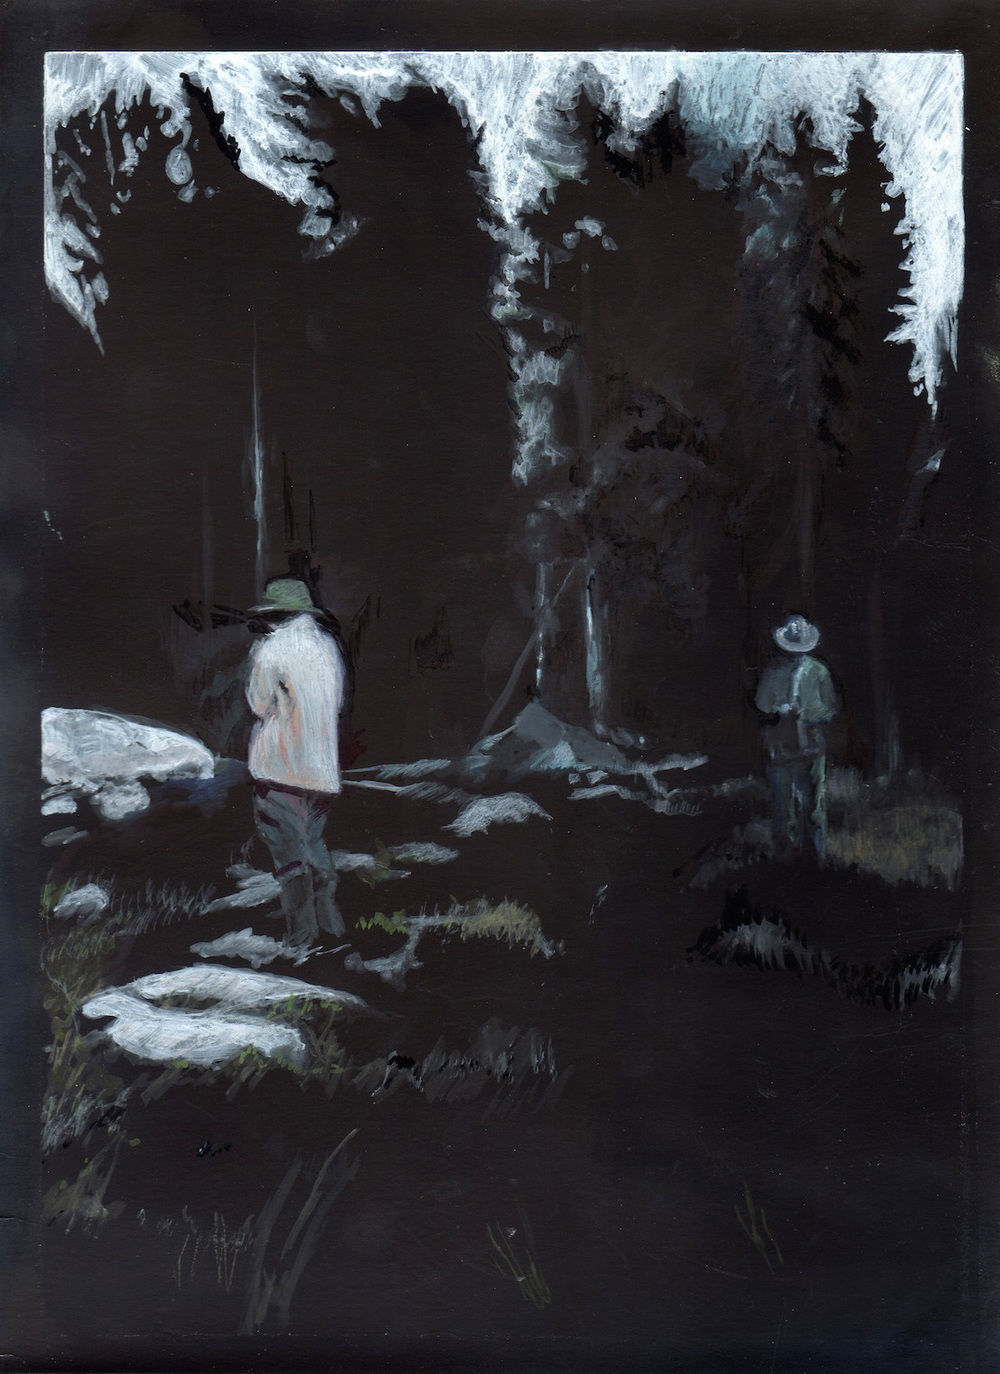 Untitled (2 figures in woods) , 2014 8 x 10 inch Watercolor and mixed-media on photopaper Signed and dated on verso